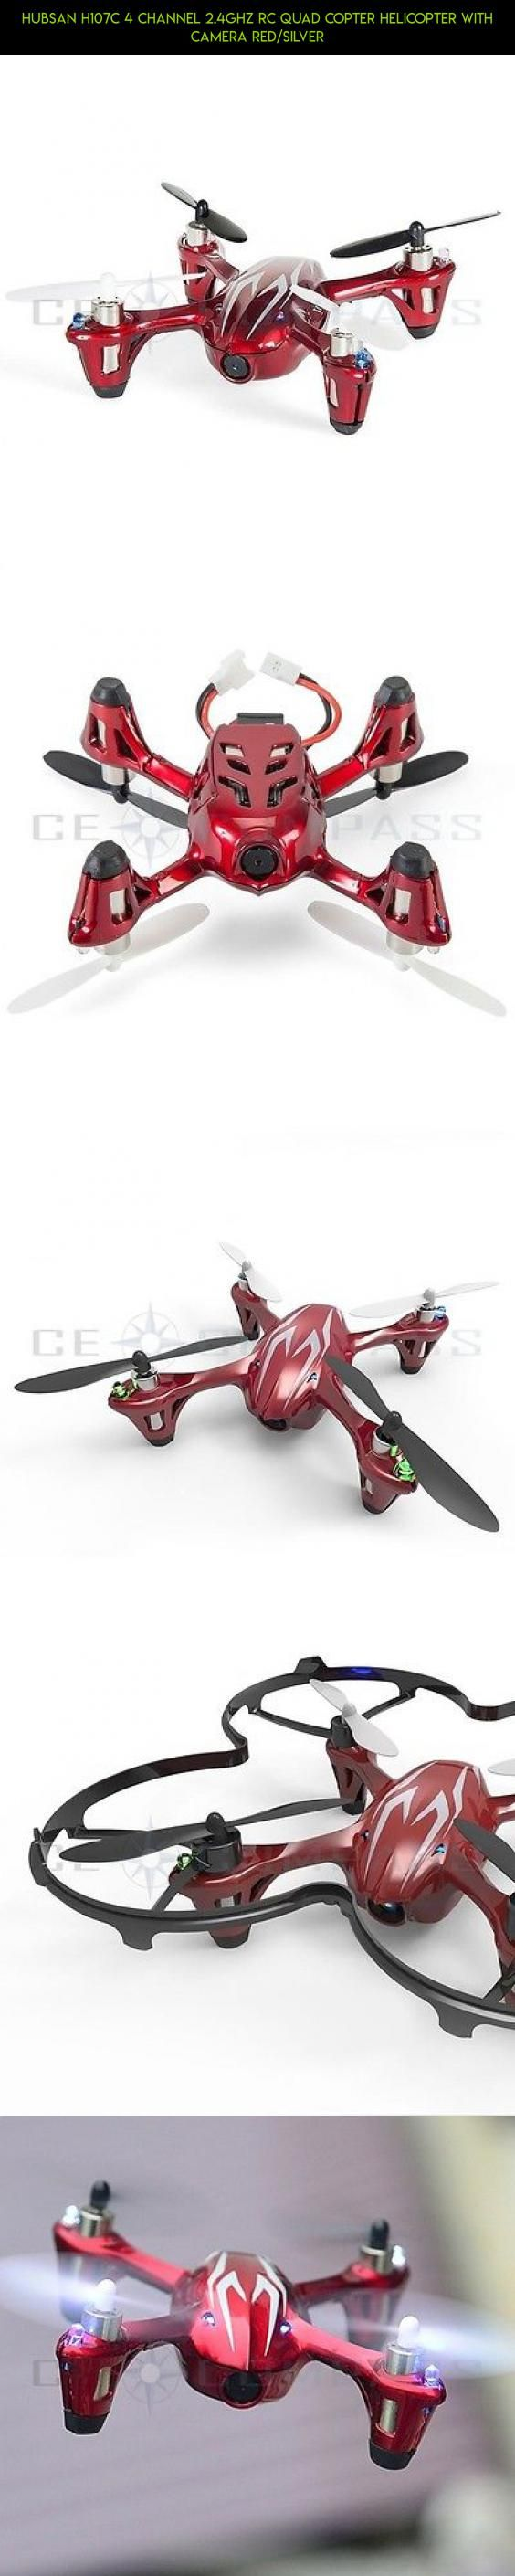 Hubsan H107C 4 Channel 2.4GHz RC Quad Copter Helicopter with Camera Red/Silver #copter #rc #channel #products #camera #kit #red #plans #hubsan #tech #silver #racing #camera #gadgets #quad #parts #shopping #fpv #with #2.4ghz #technology #4 #drone